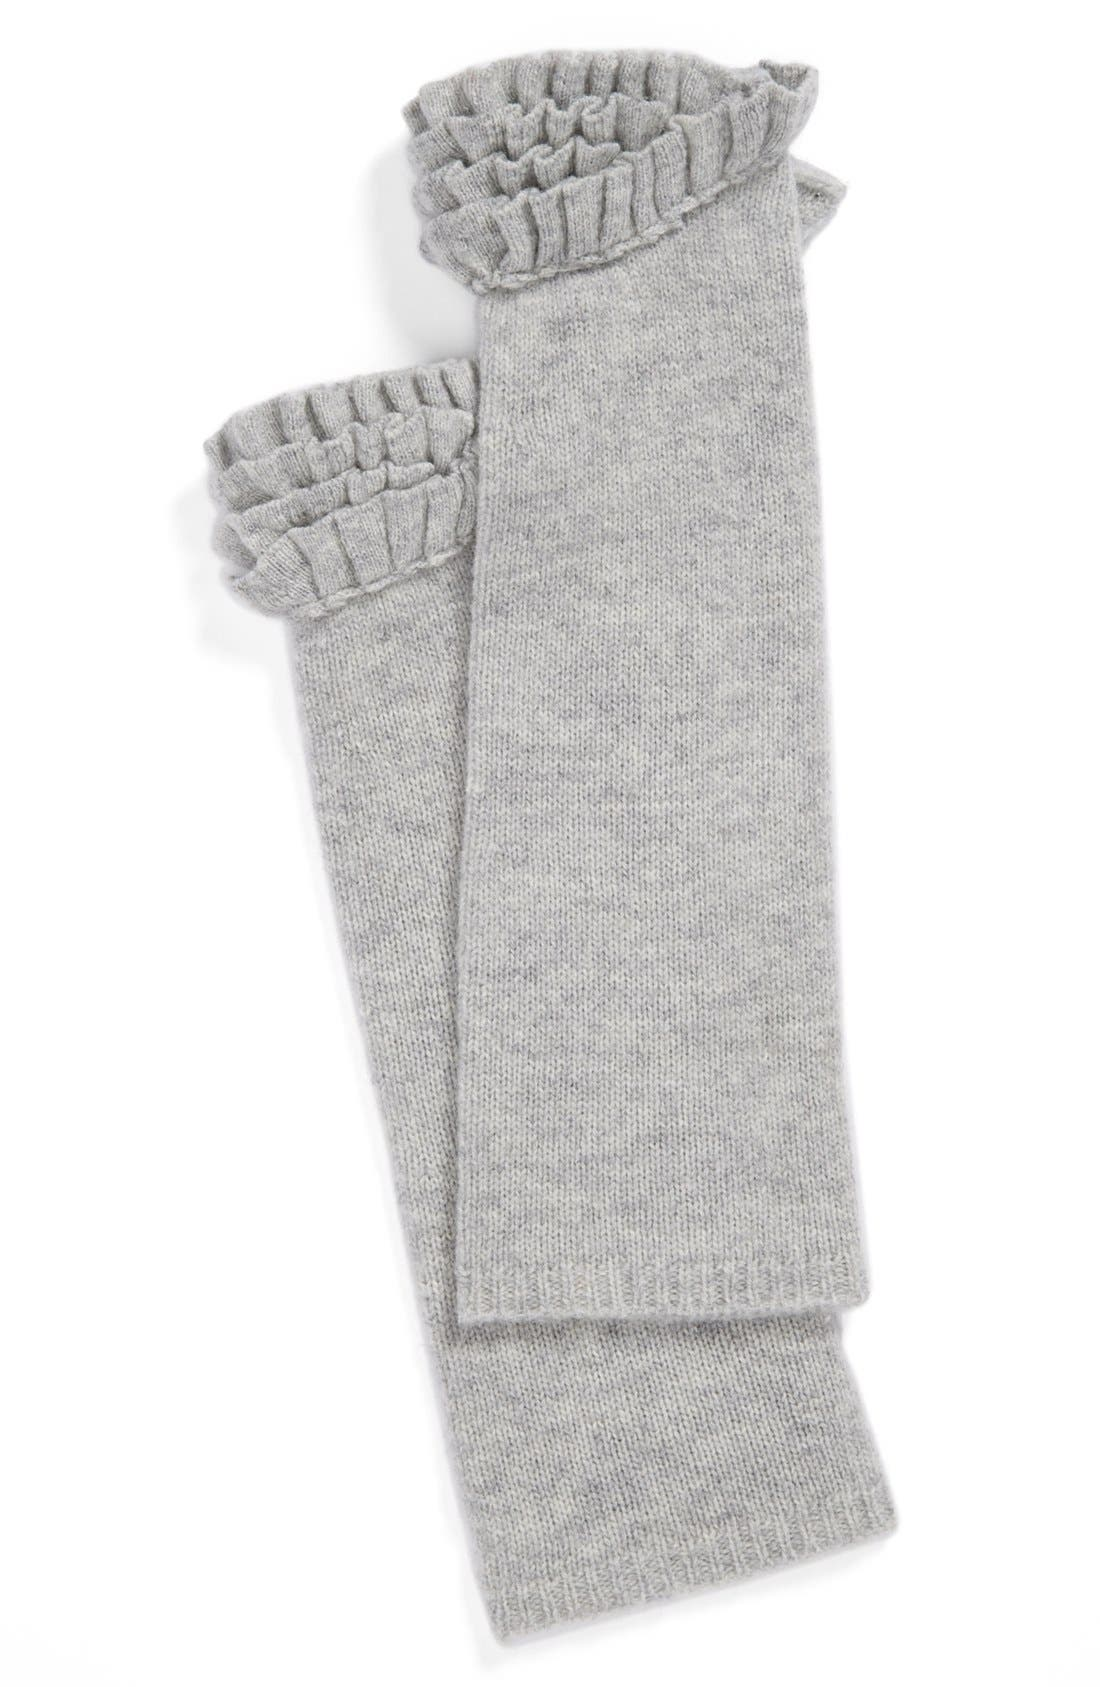 Alternate Image 1 Selected - Lauren Ralph Lauren 'Victorian Ruffle' Knit Arm Warmers